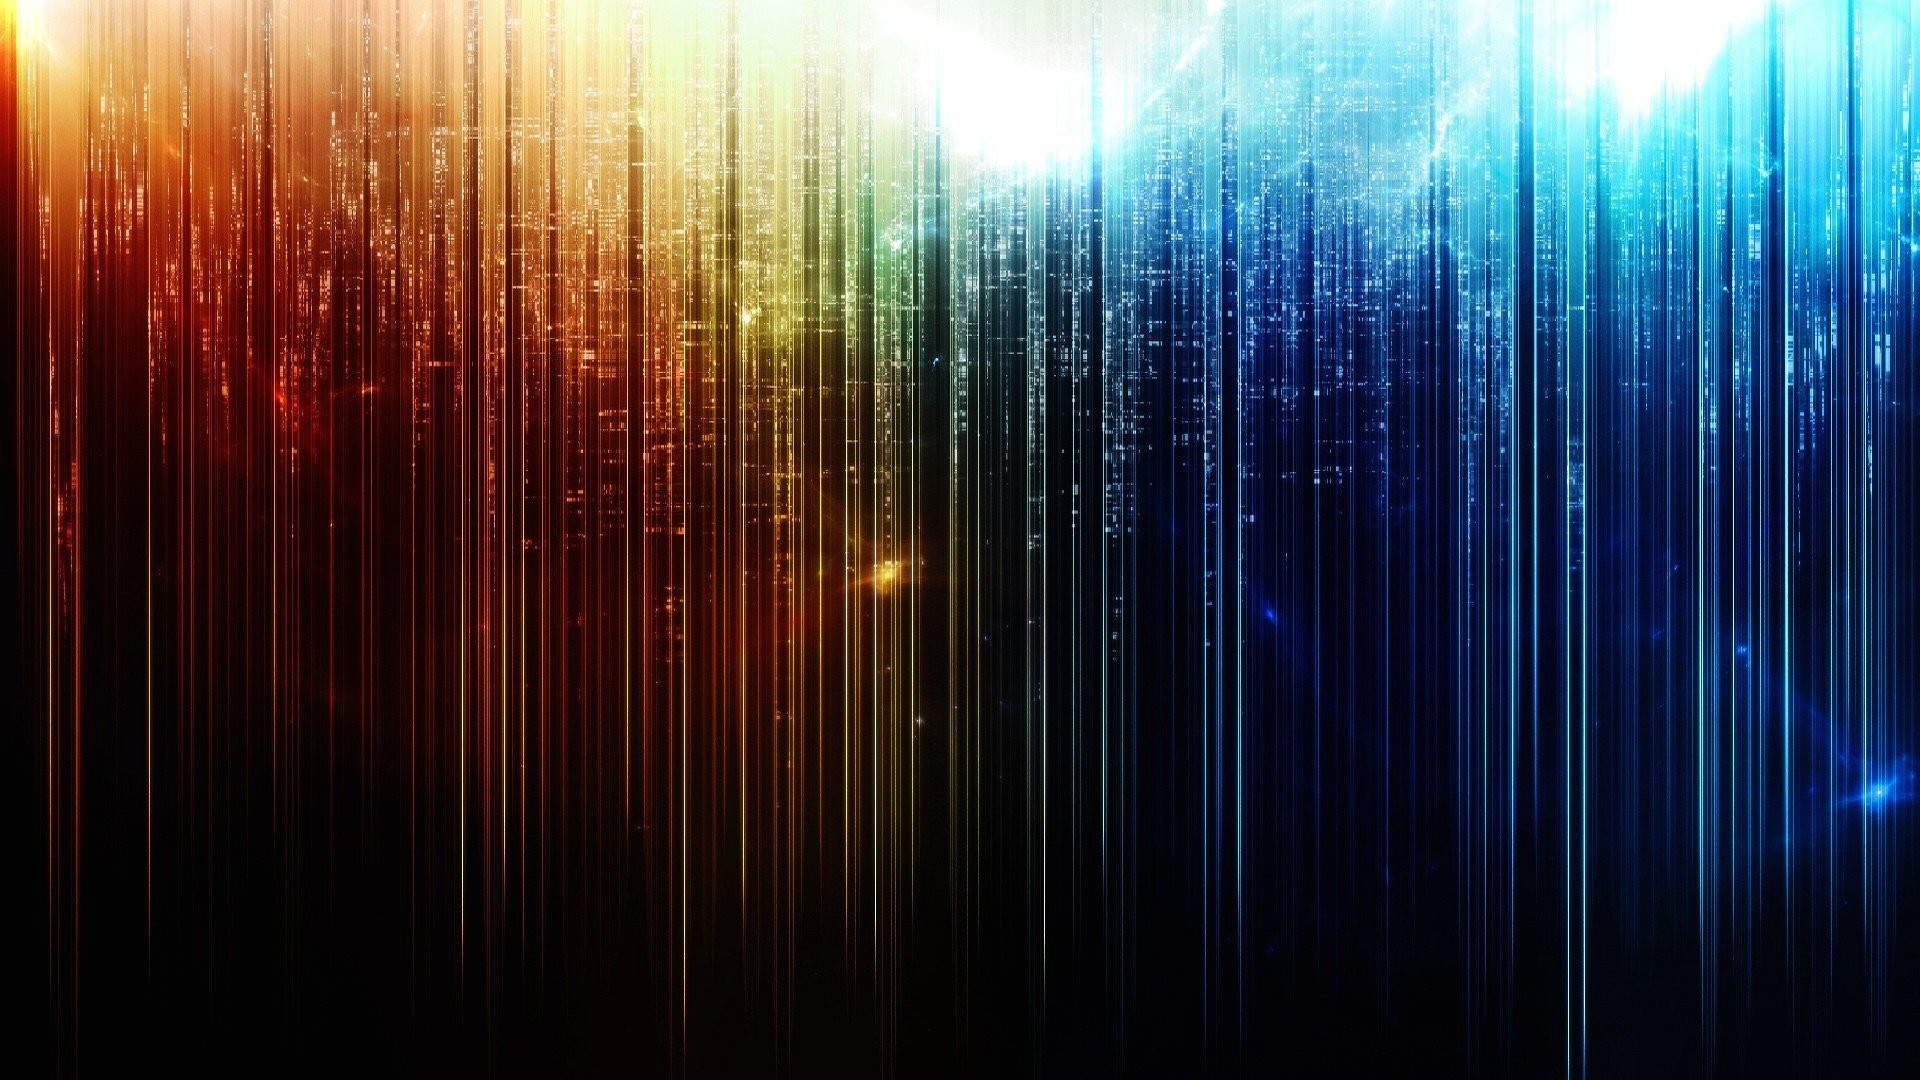 HD Abstract Wallpaper Widescreen 1920×1080, 22 High Quality .